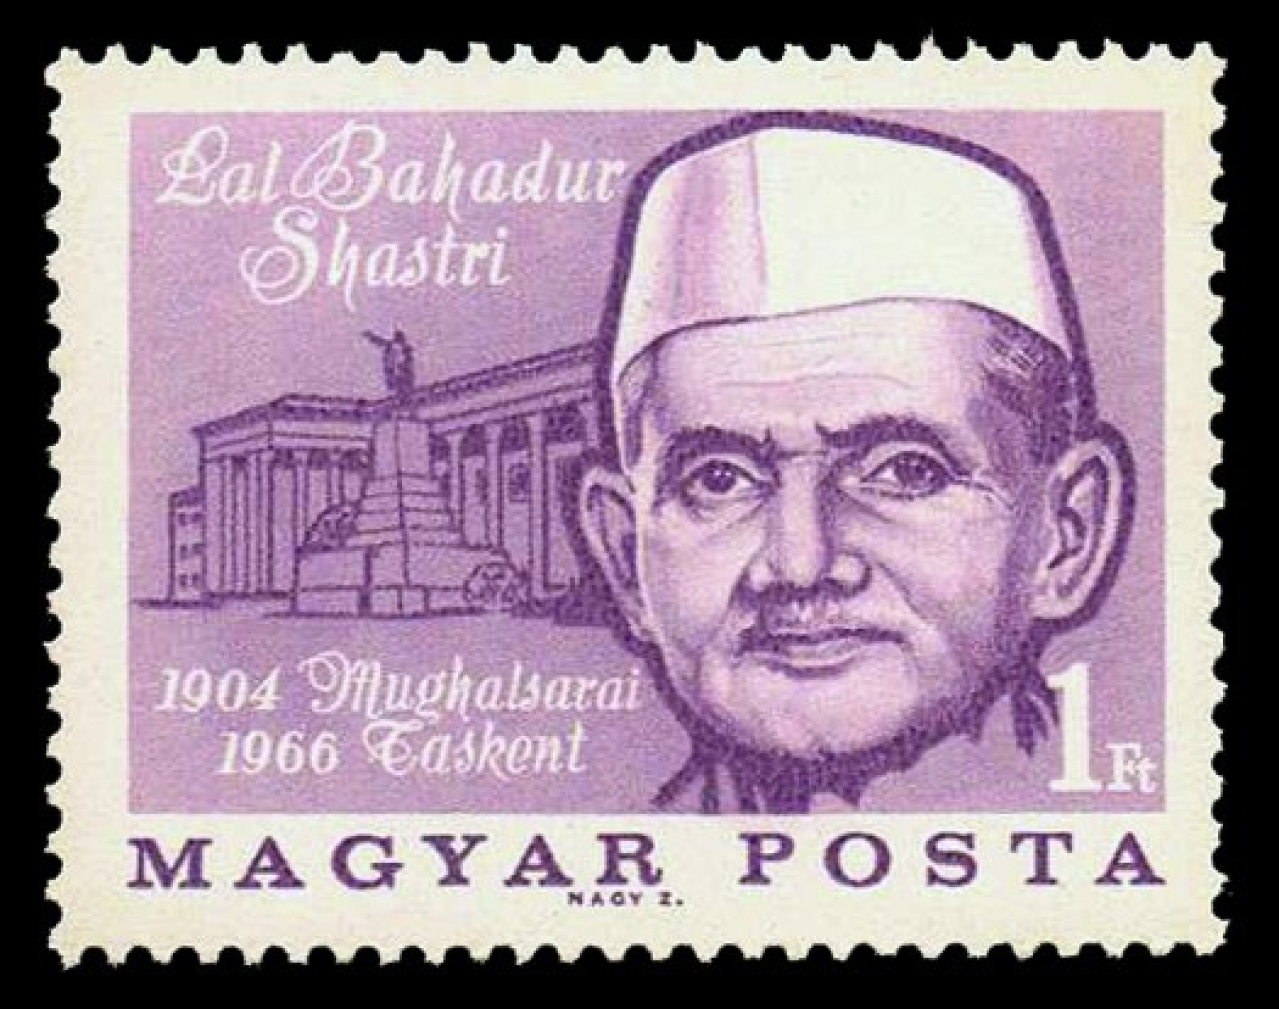 Hungarian Stamp of Lal Bahadur Shastri in 1976